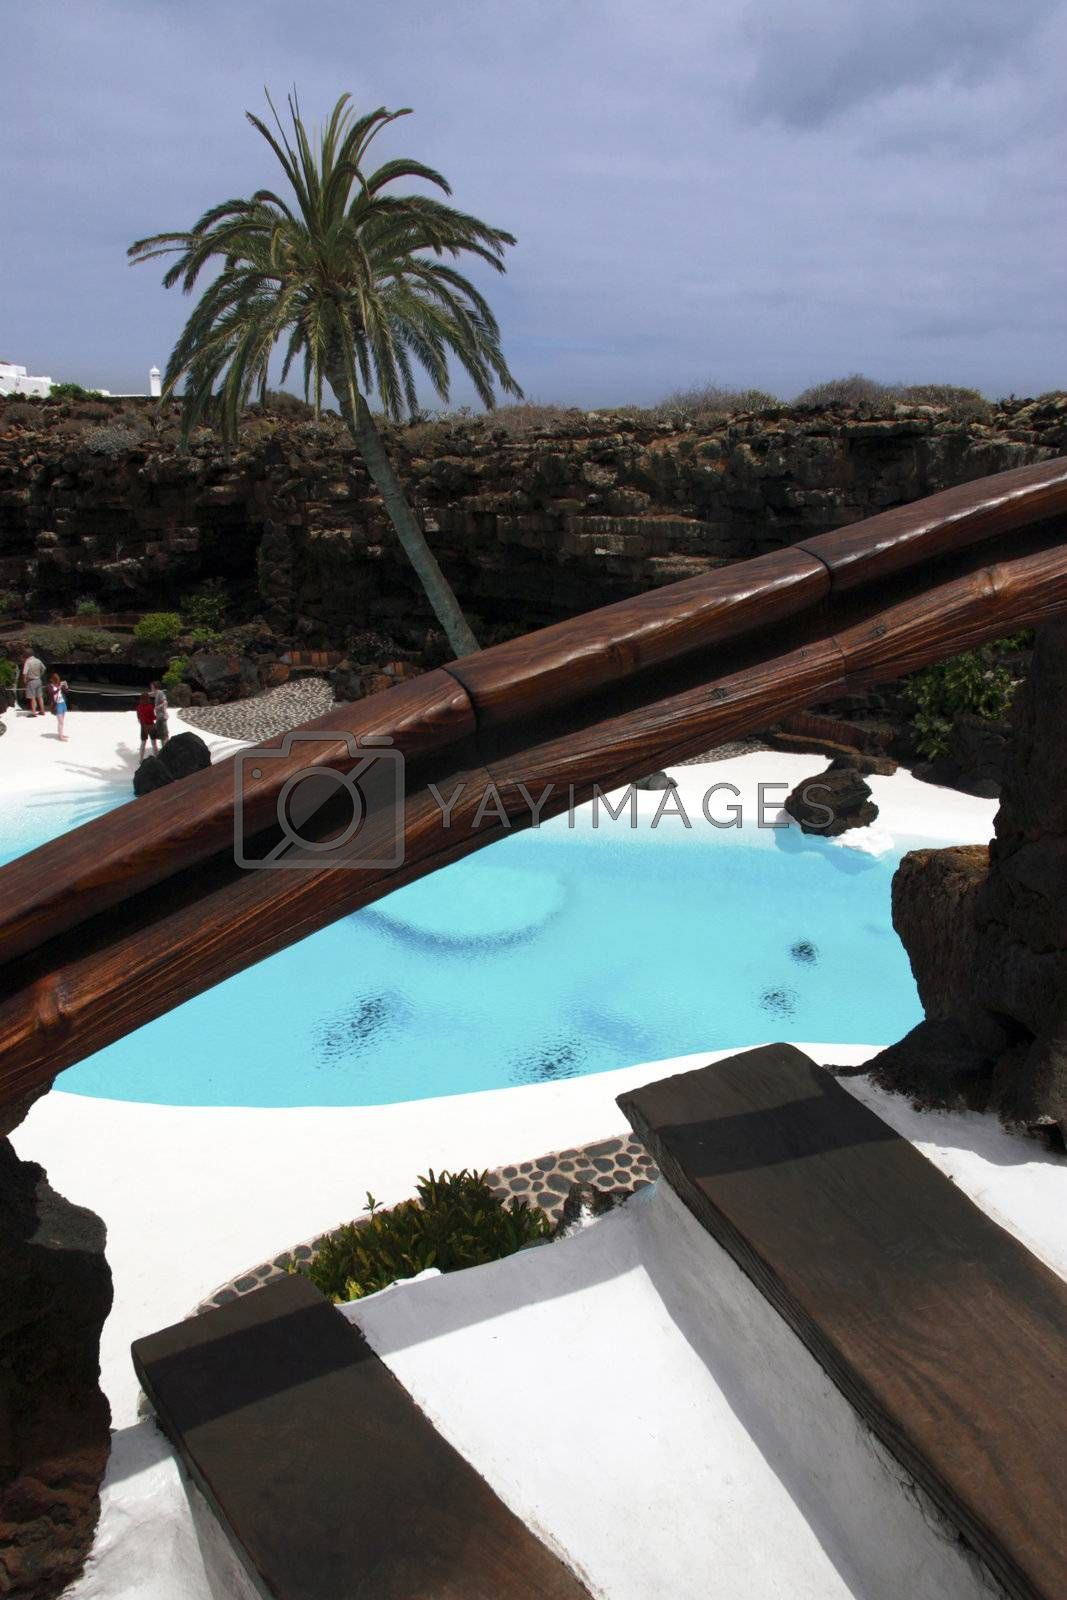 Royalty free image of pool romance by morrbyte